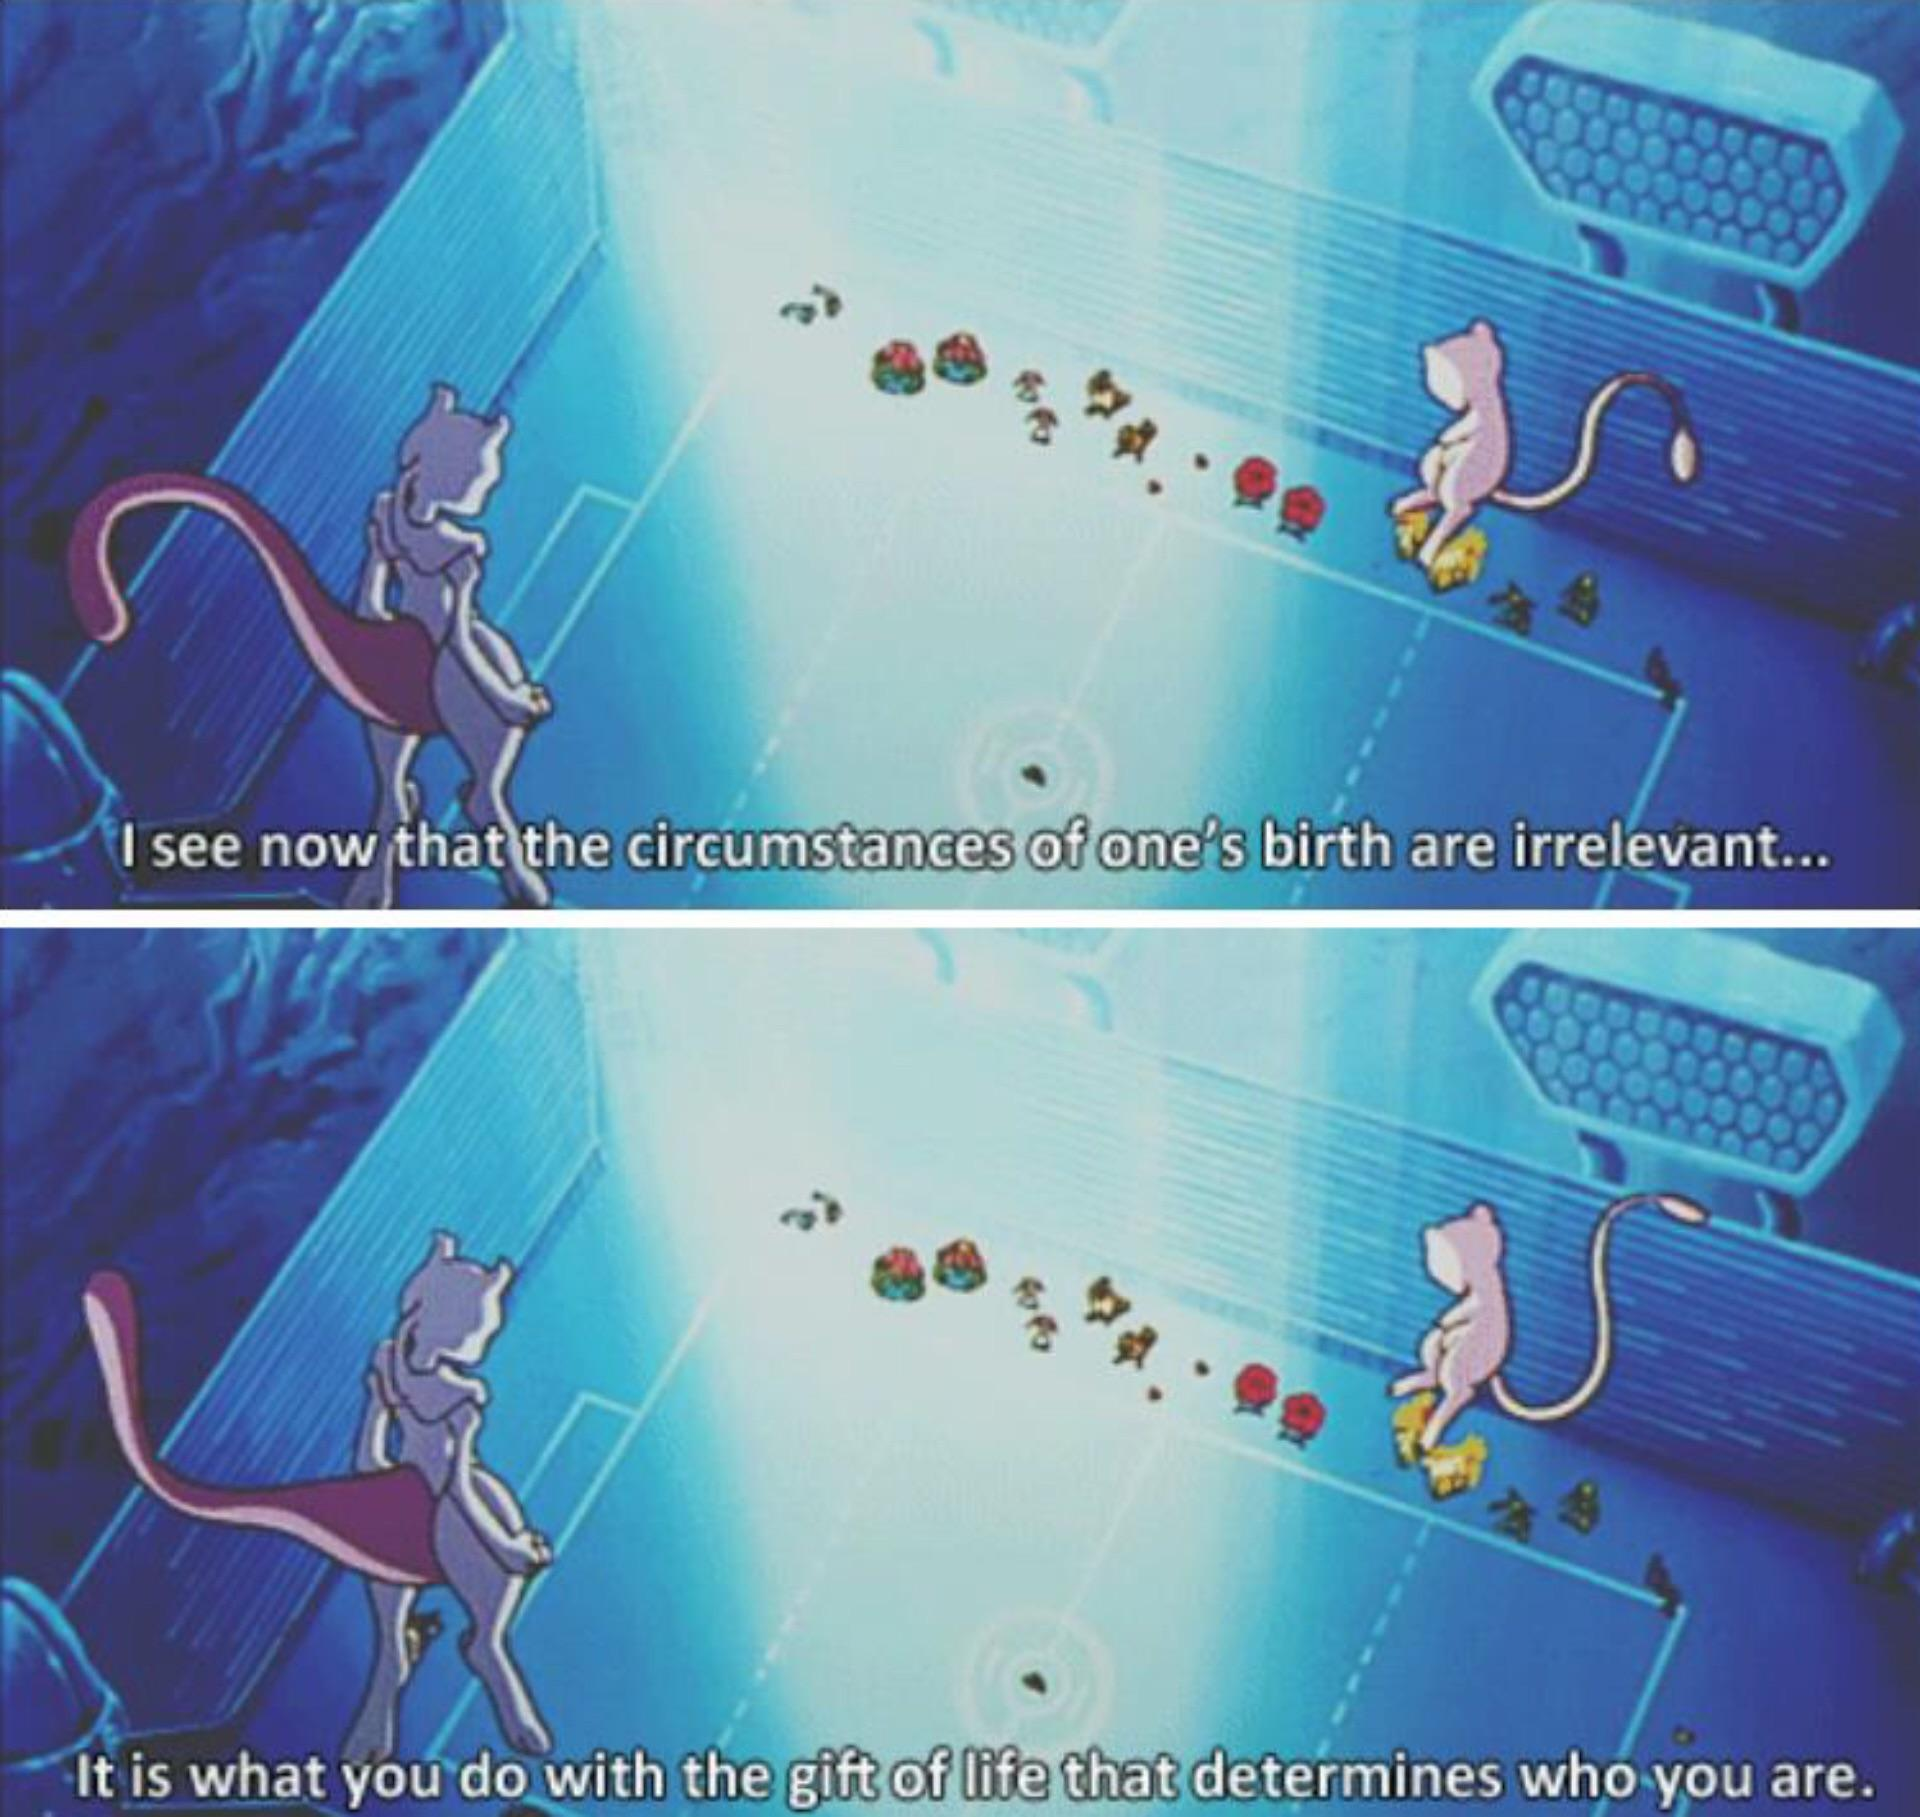 [IMAGE] Pokémon with some interesting advice.